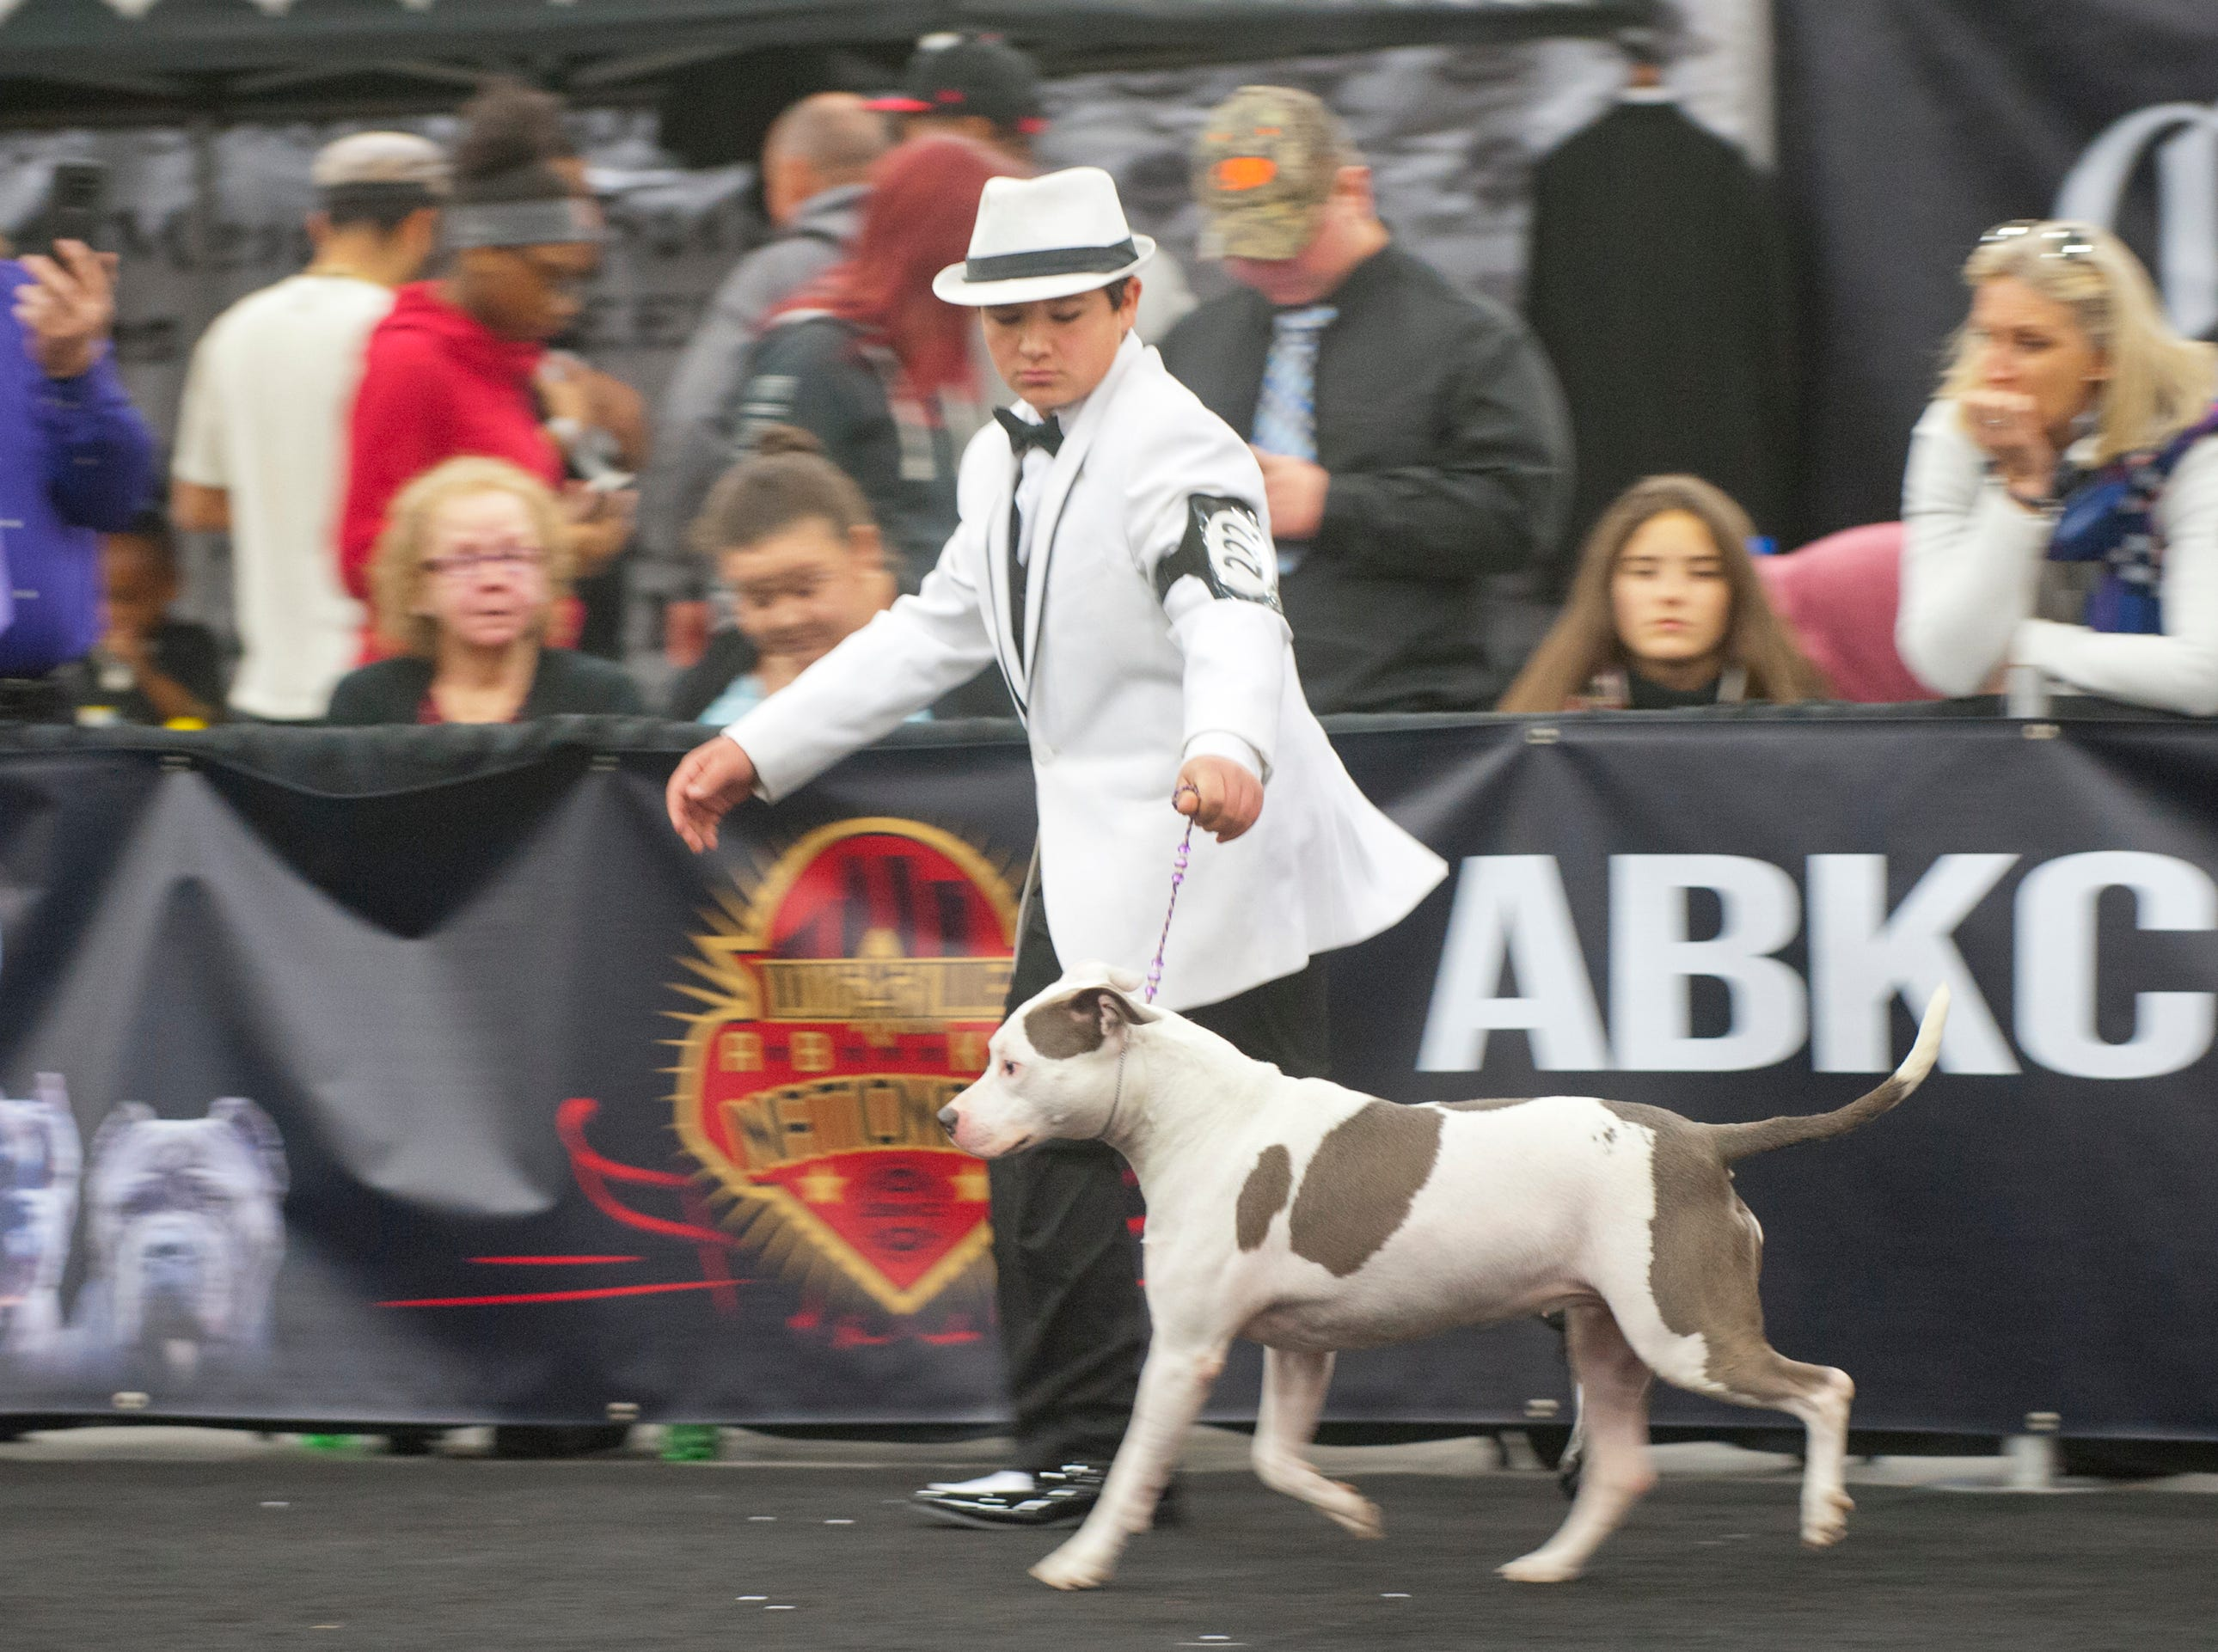 """Junior Handler Logan Jones parades Grand Champion Karma around the ring during the 2018 American Bully Kennel Club's 12th annual confirmation event at the Kentucky Convention Center in Louisville. Karma is a """"rescued"""" dog. Jones is the nation's best junior handler, accumulating over 3,500 points for his wins.November 10, 2018"""